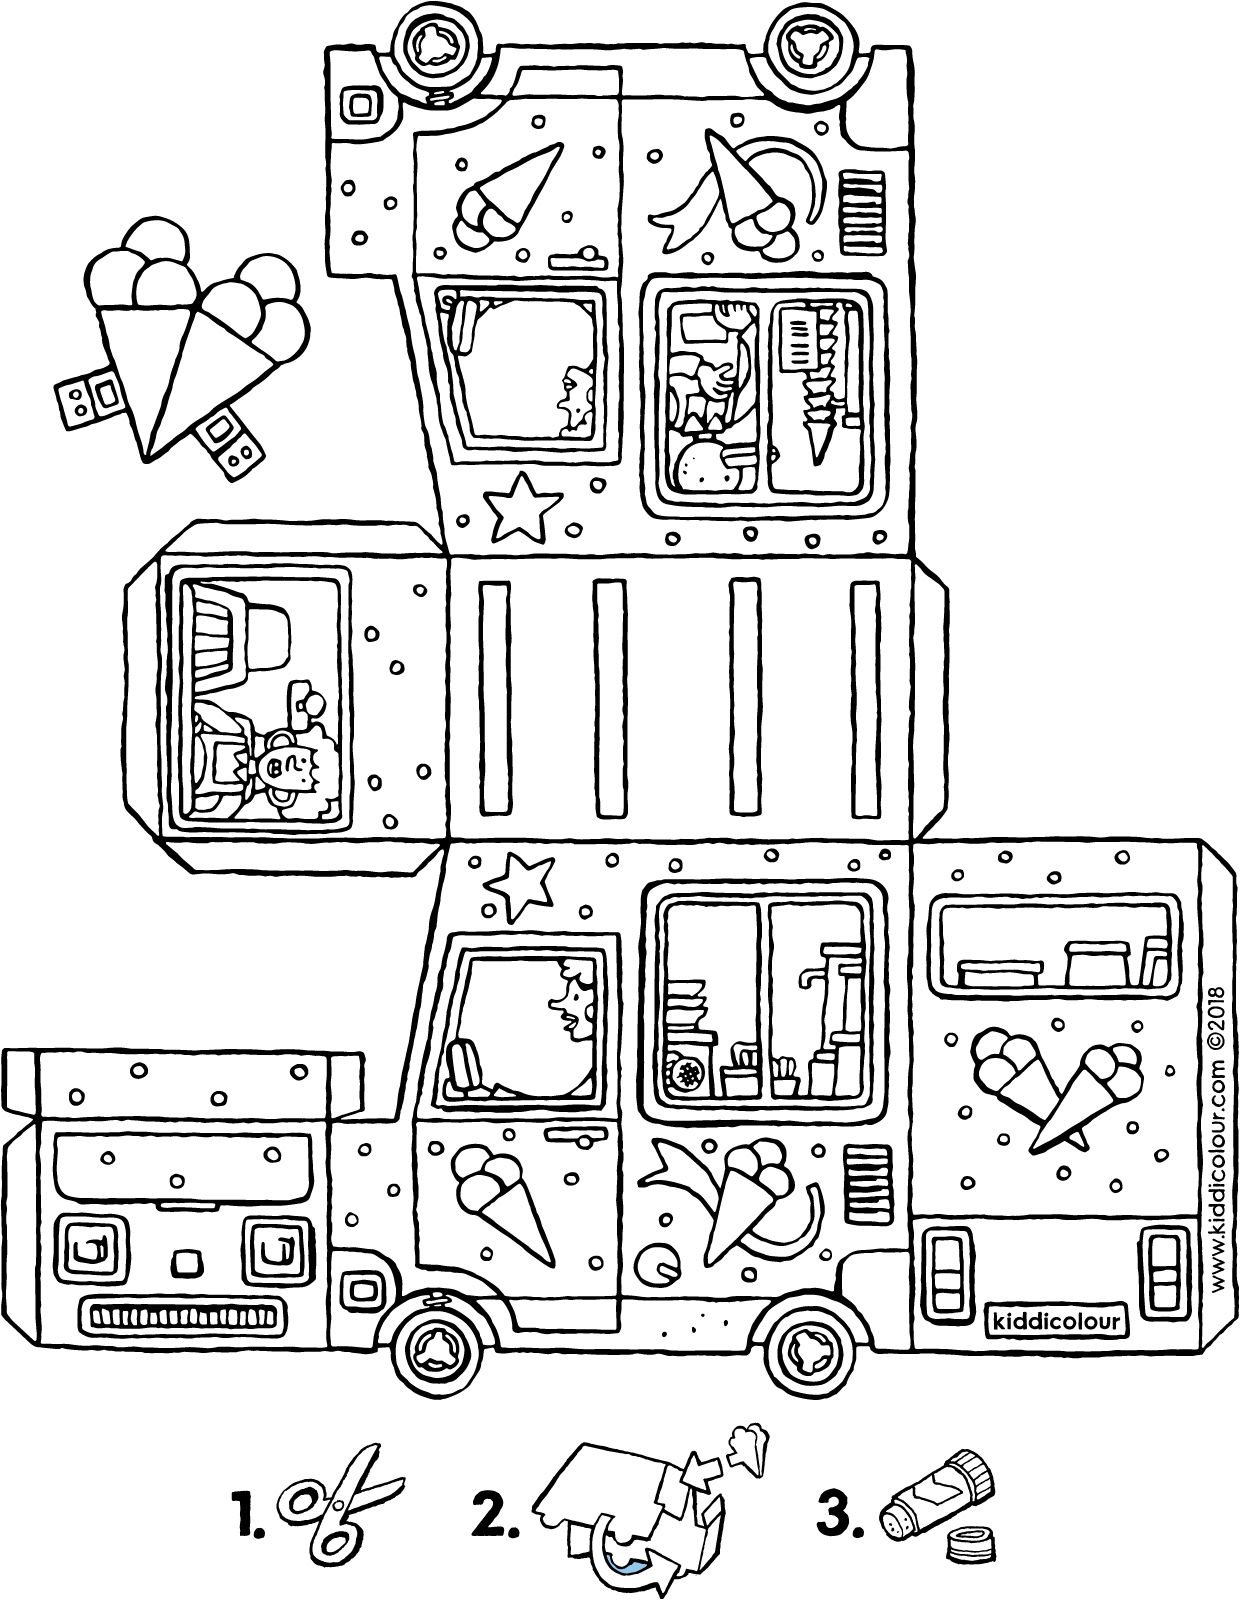 make your own ice cream van colouring page drawing picture 01V